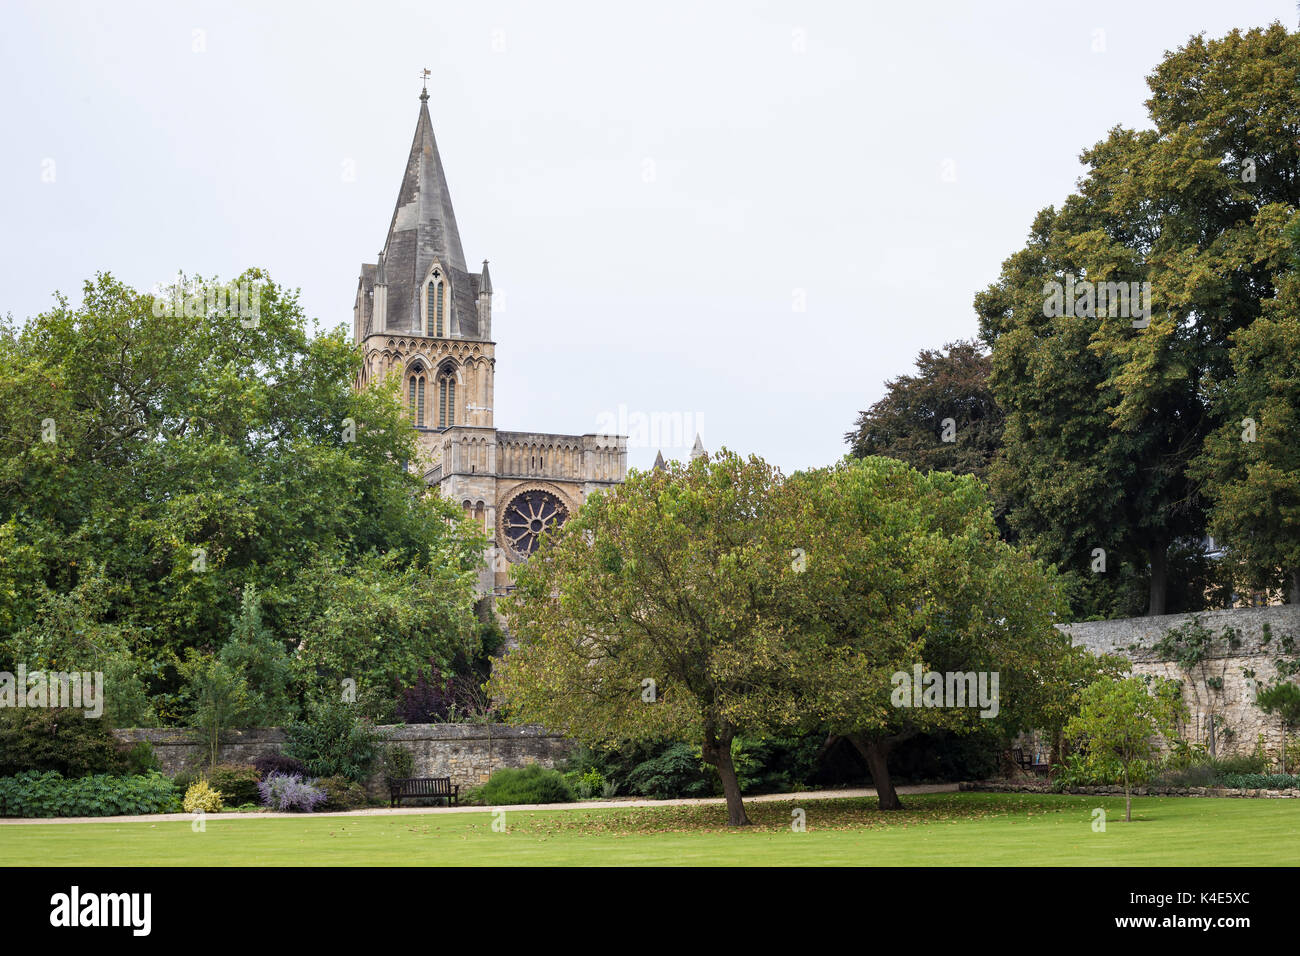 Oxford, United Kingdom - 3 September 2017: View of the Corpus Christi Auditorium in the city of Oxford. - Stock Image